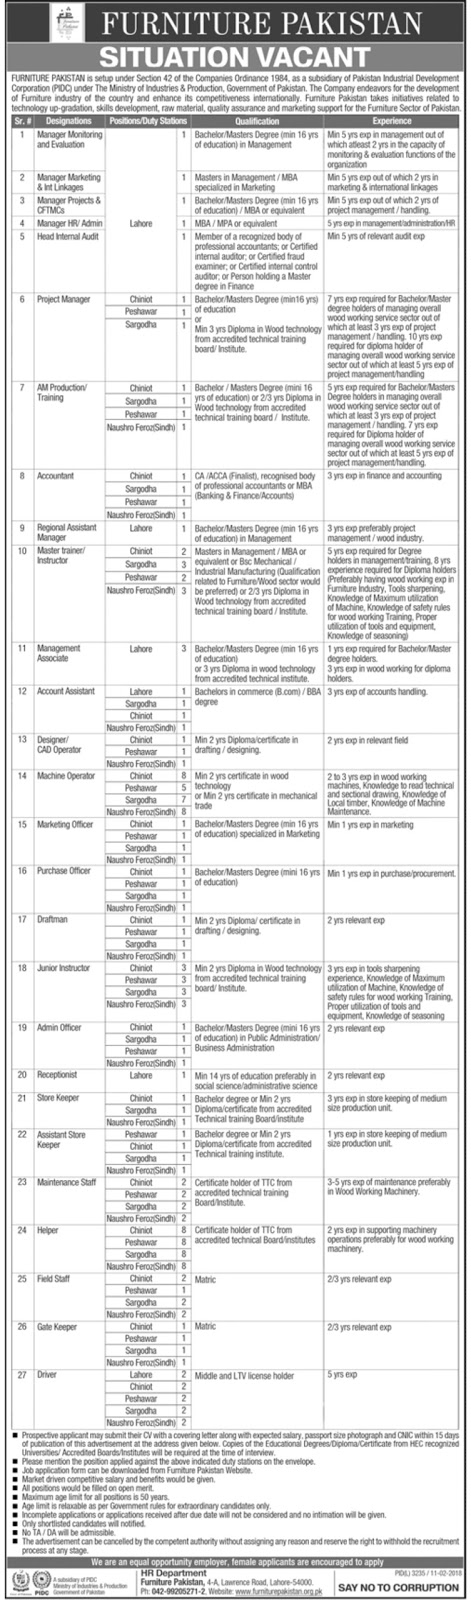 Jobs In Ministry Of Industries And Production Govt Of Pakistan 2018 for 161 Posts